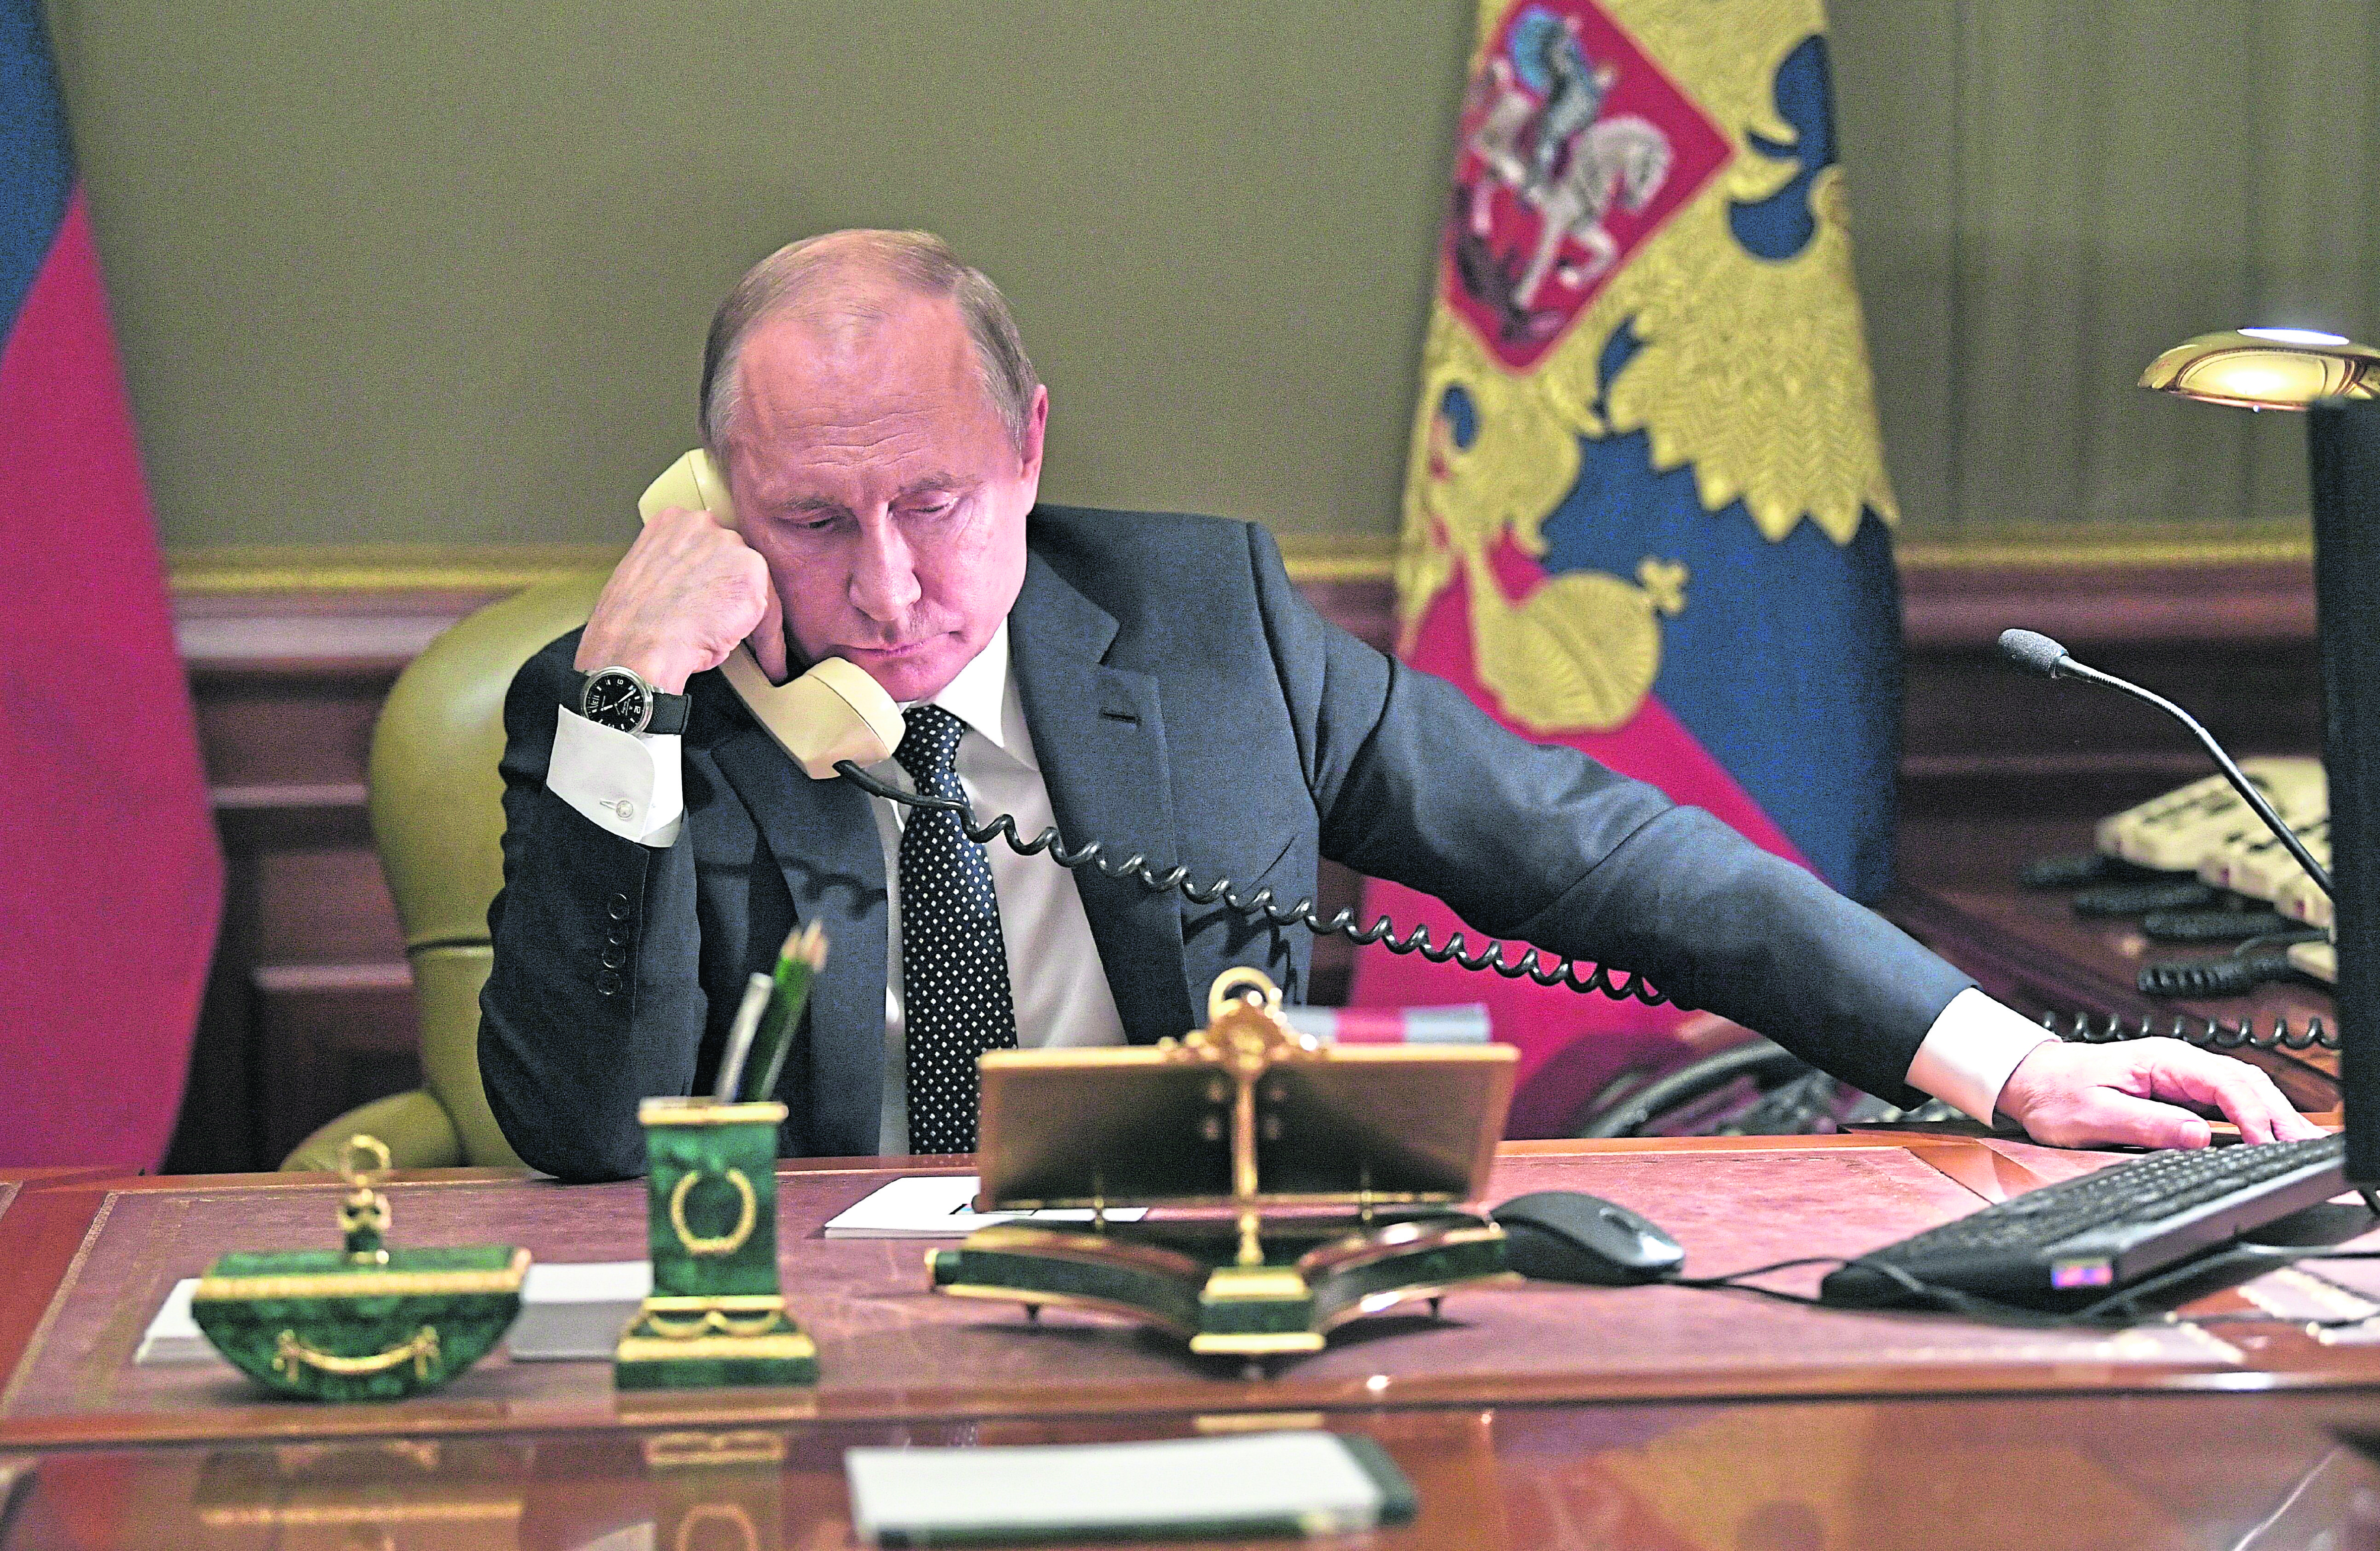 Vladimir Putin, putting in a call from his office in Moscow, has been accused of complicity